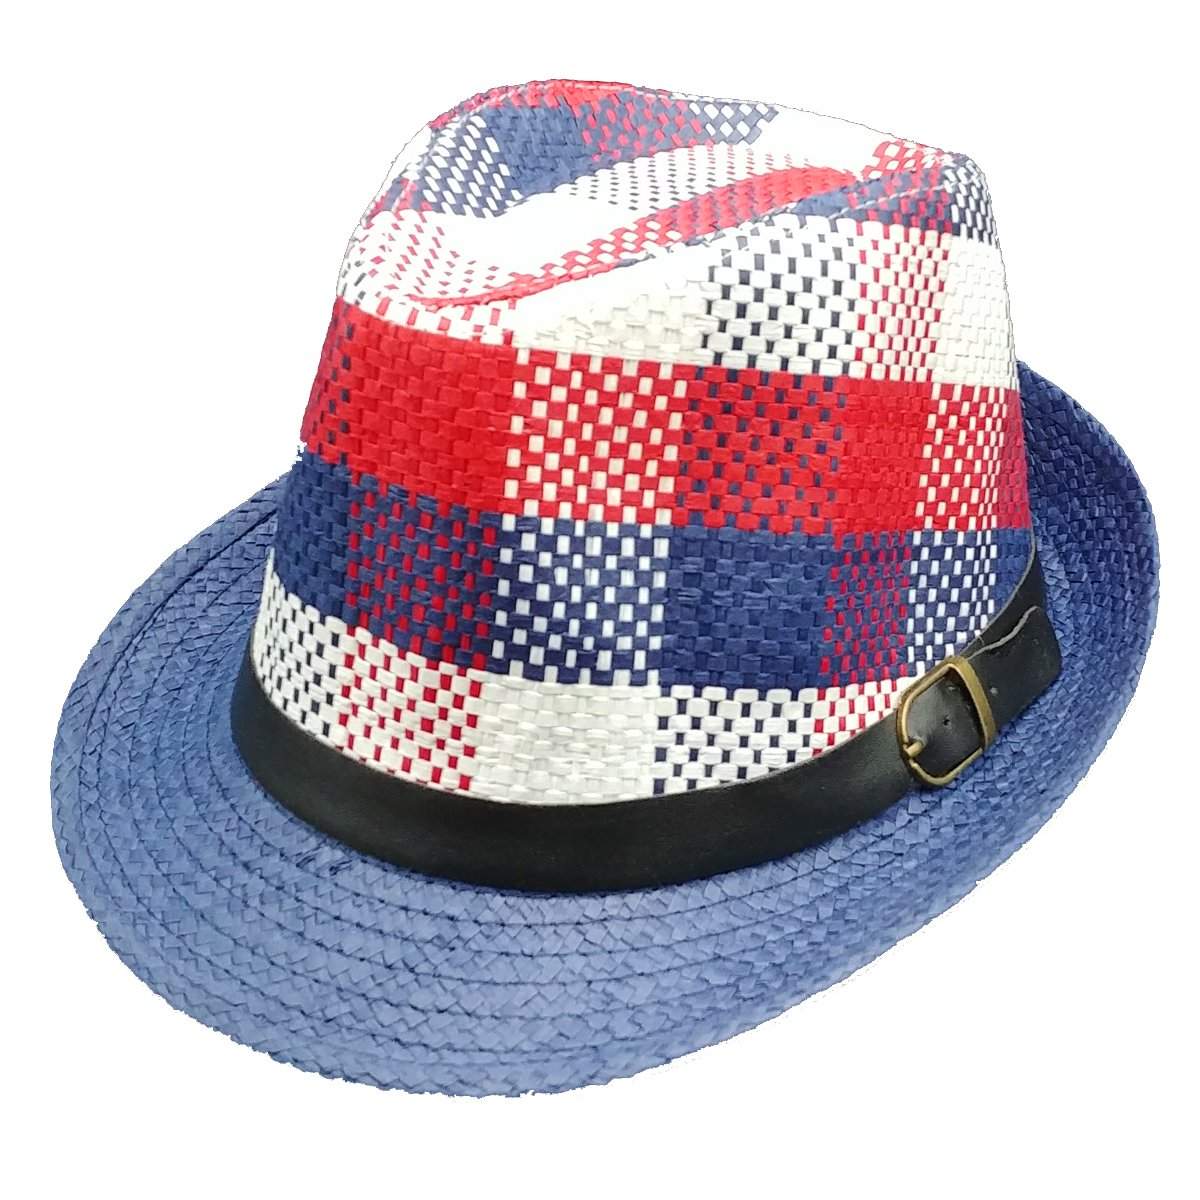 Contemporary Fedora Hat for Men Women Unisex with American Flag Retro Originals New Novelty Trilby Styles